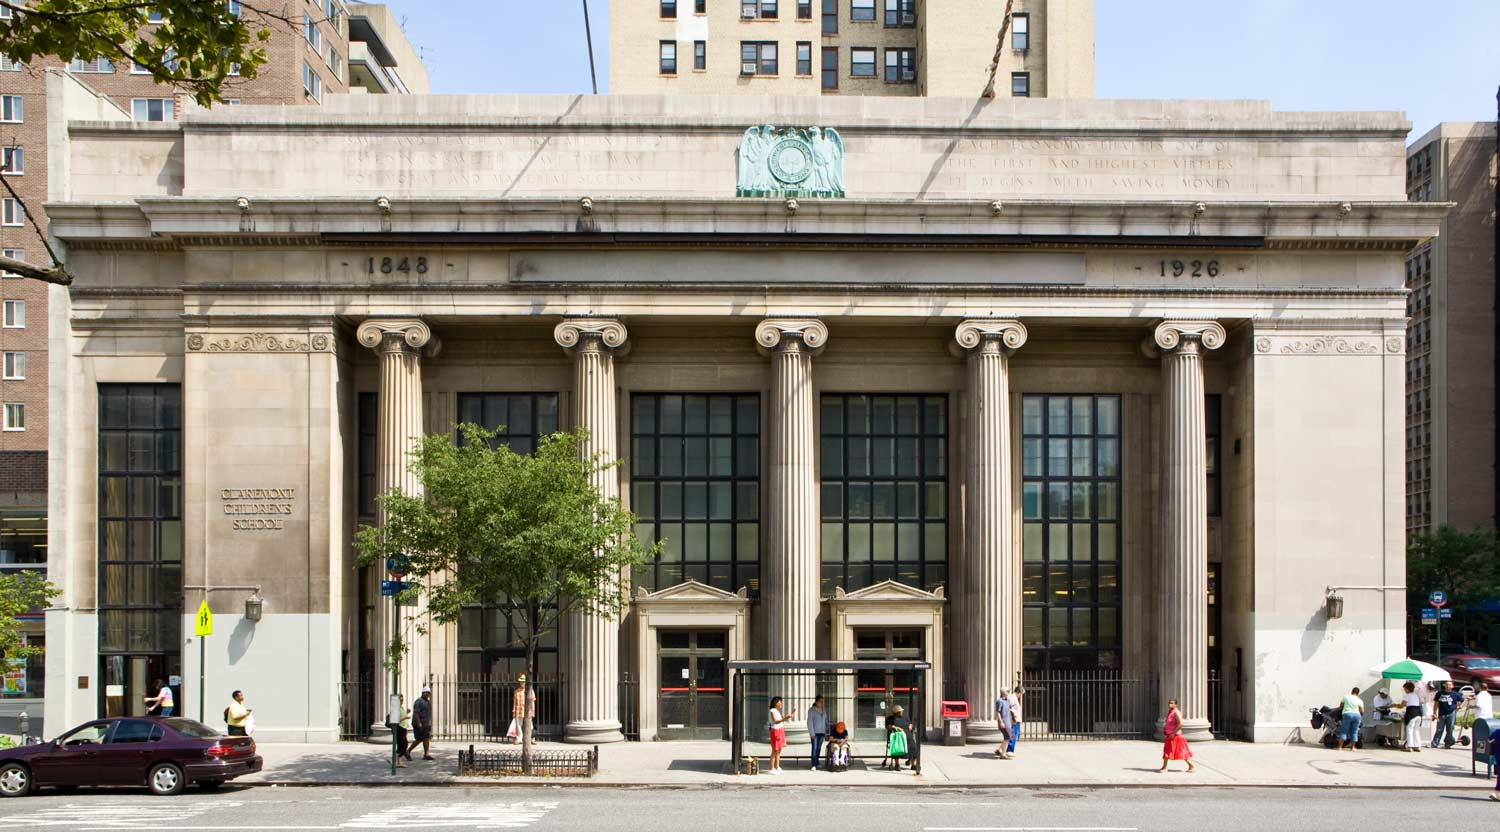 Conversion of a former bank to a new multi-level school on Manhattan's Upper West Side.